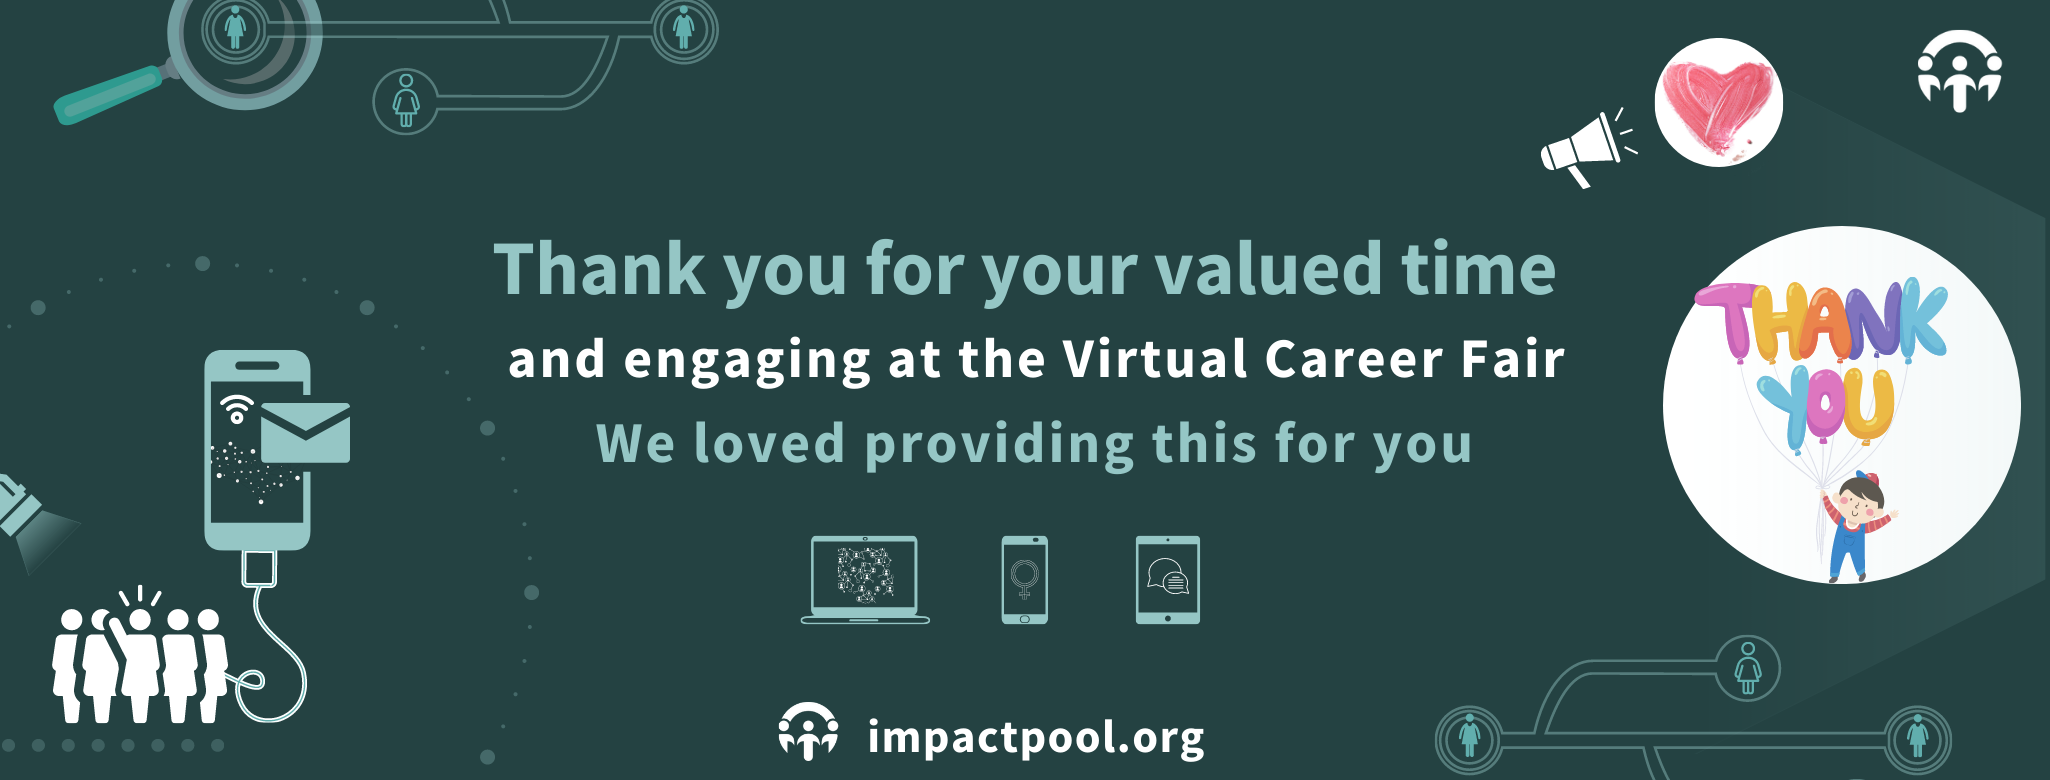 A look back at impactpools first virtual career fair 39a1d3bc 9546 4965 a3f4 4bbd18b8b10c